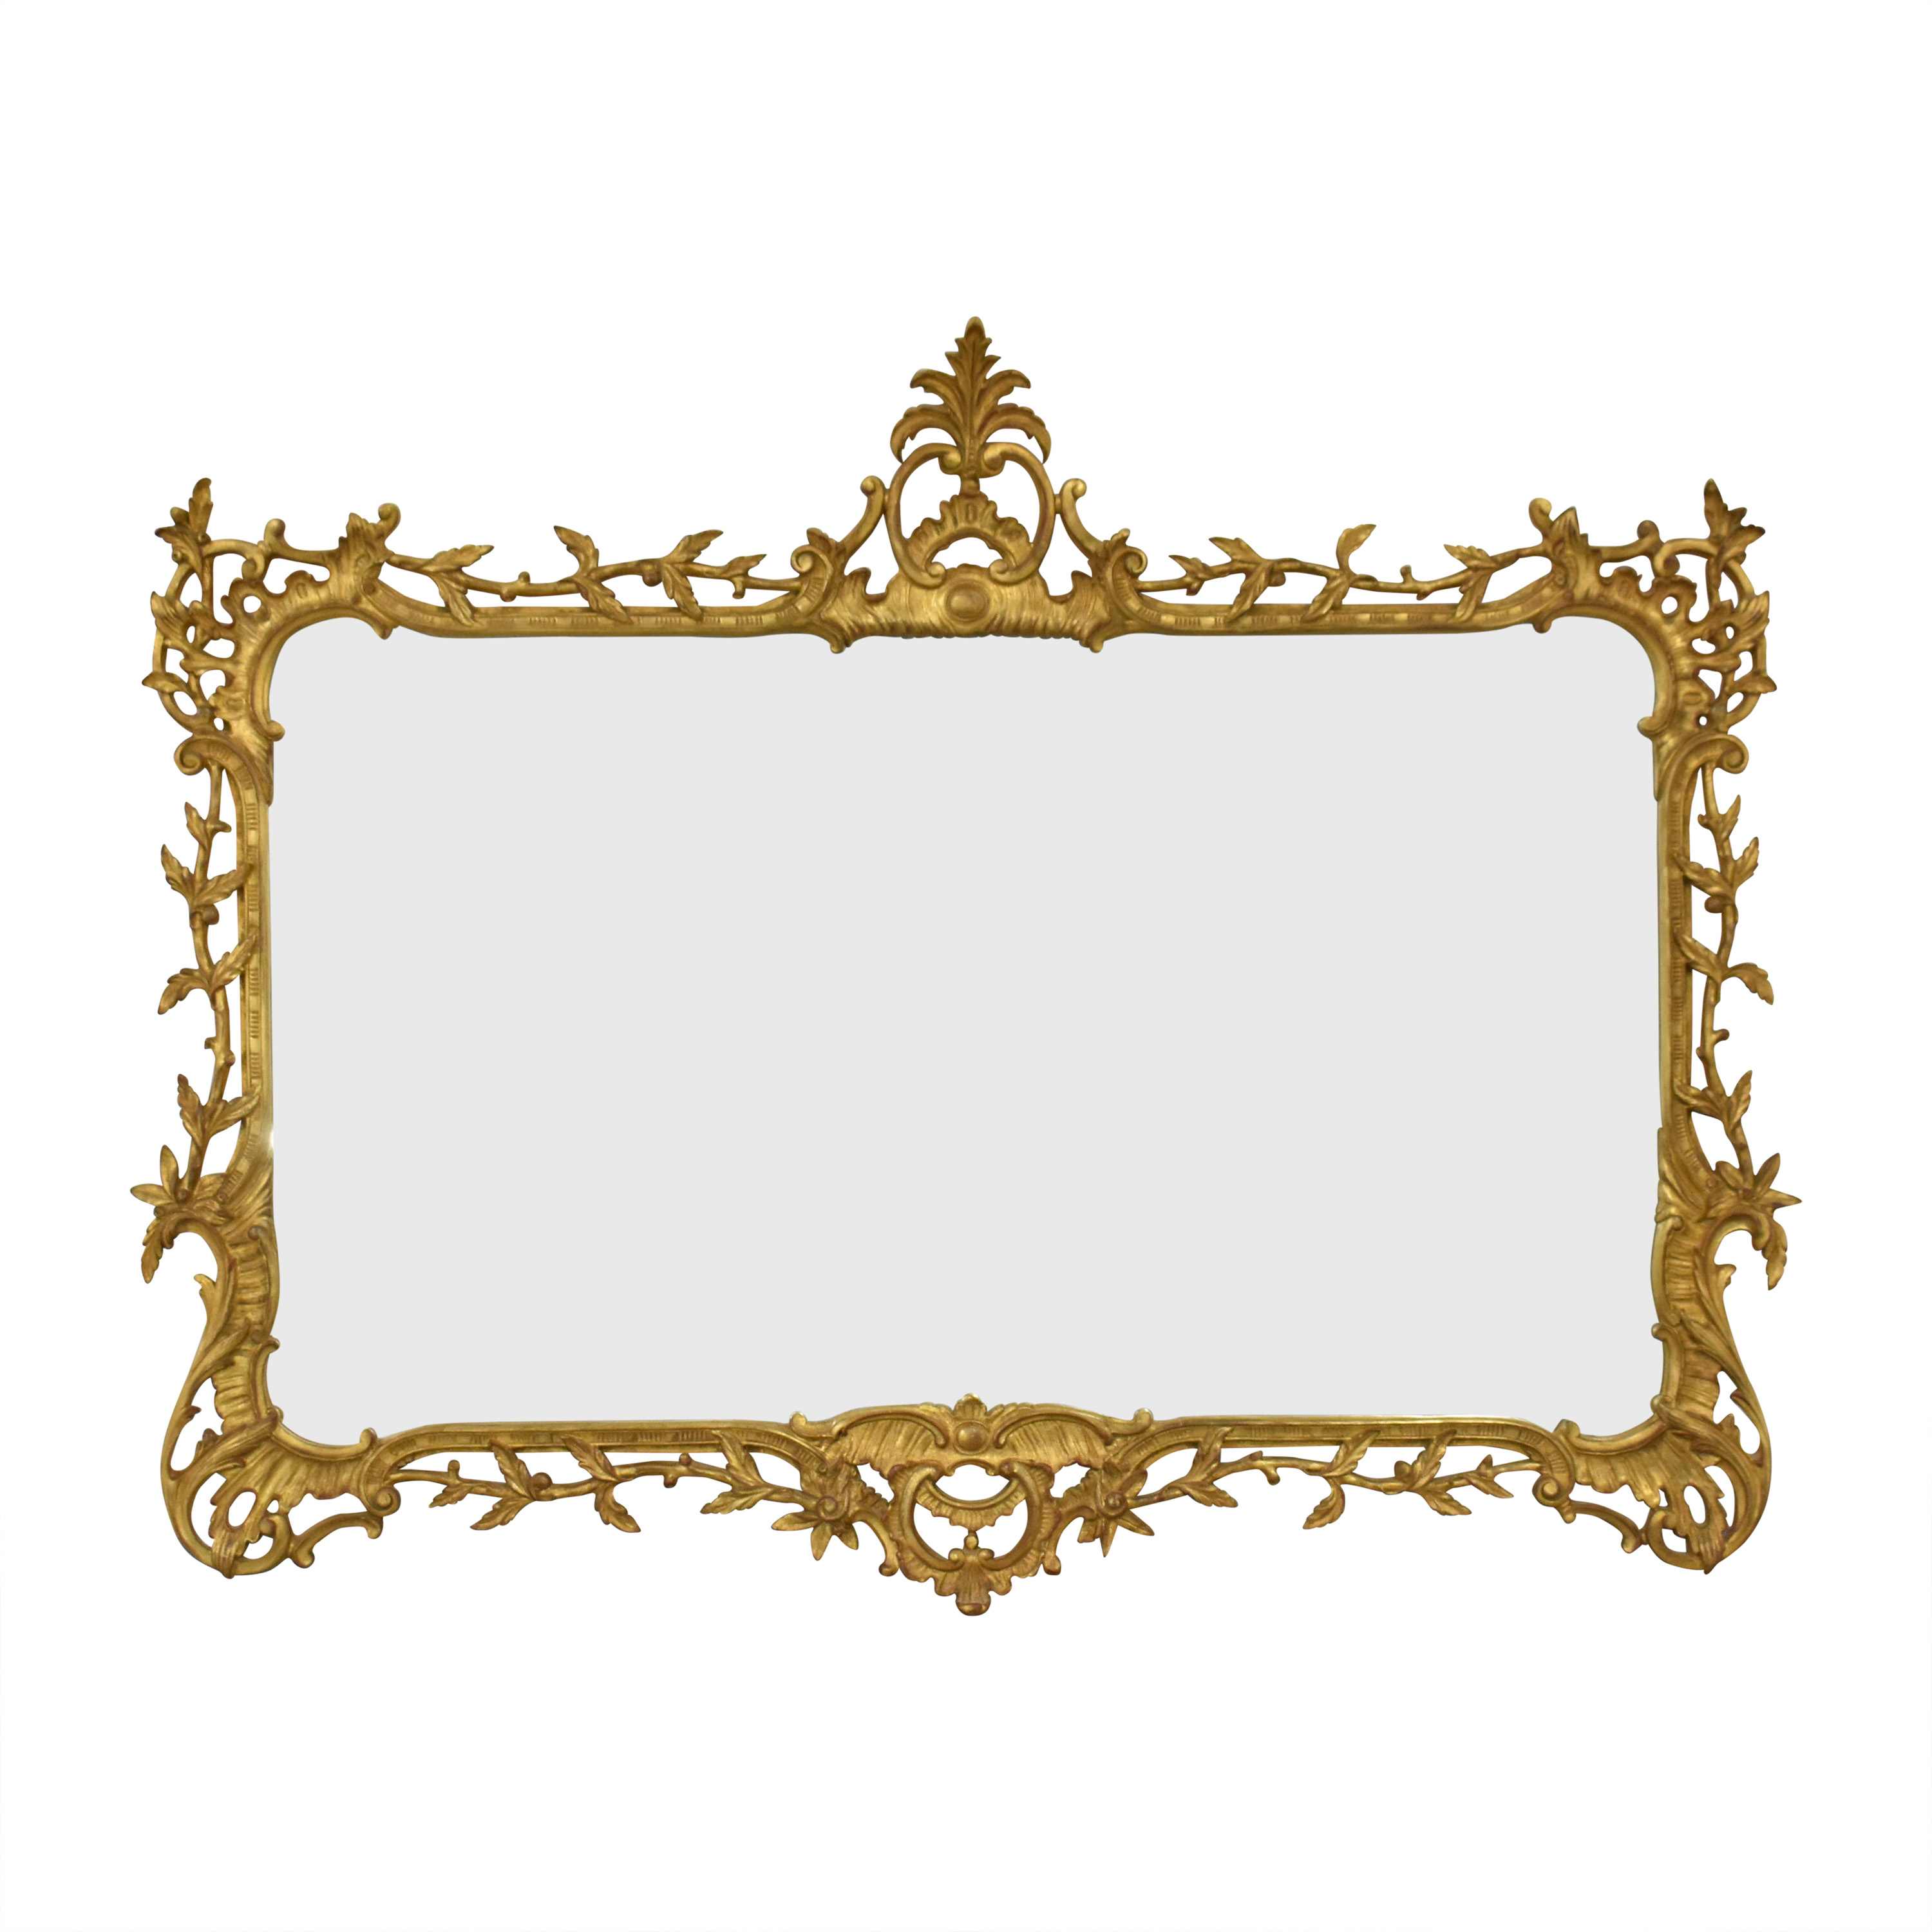 Carvers' Guild Carvers' Guild Foliate Chippendale Mirror gold